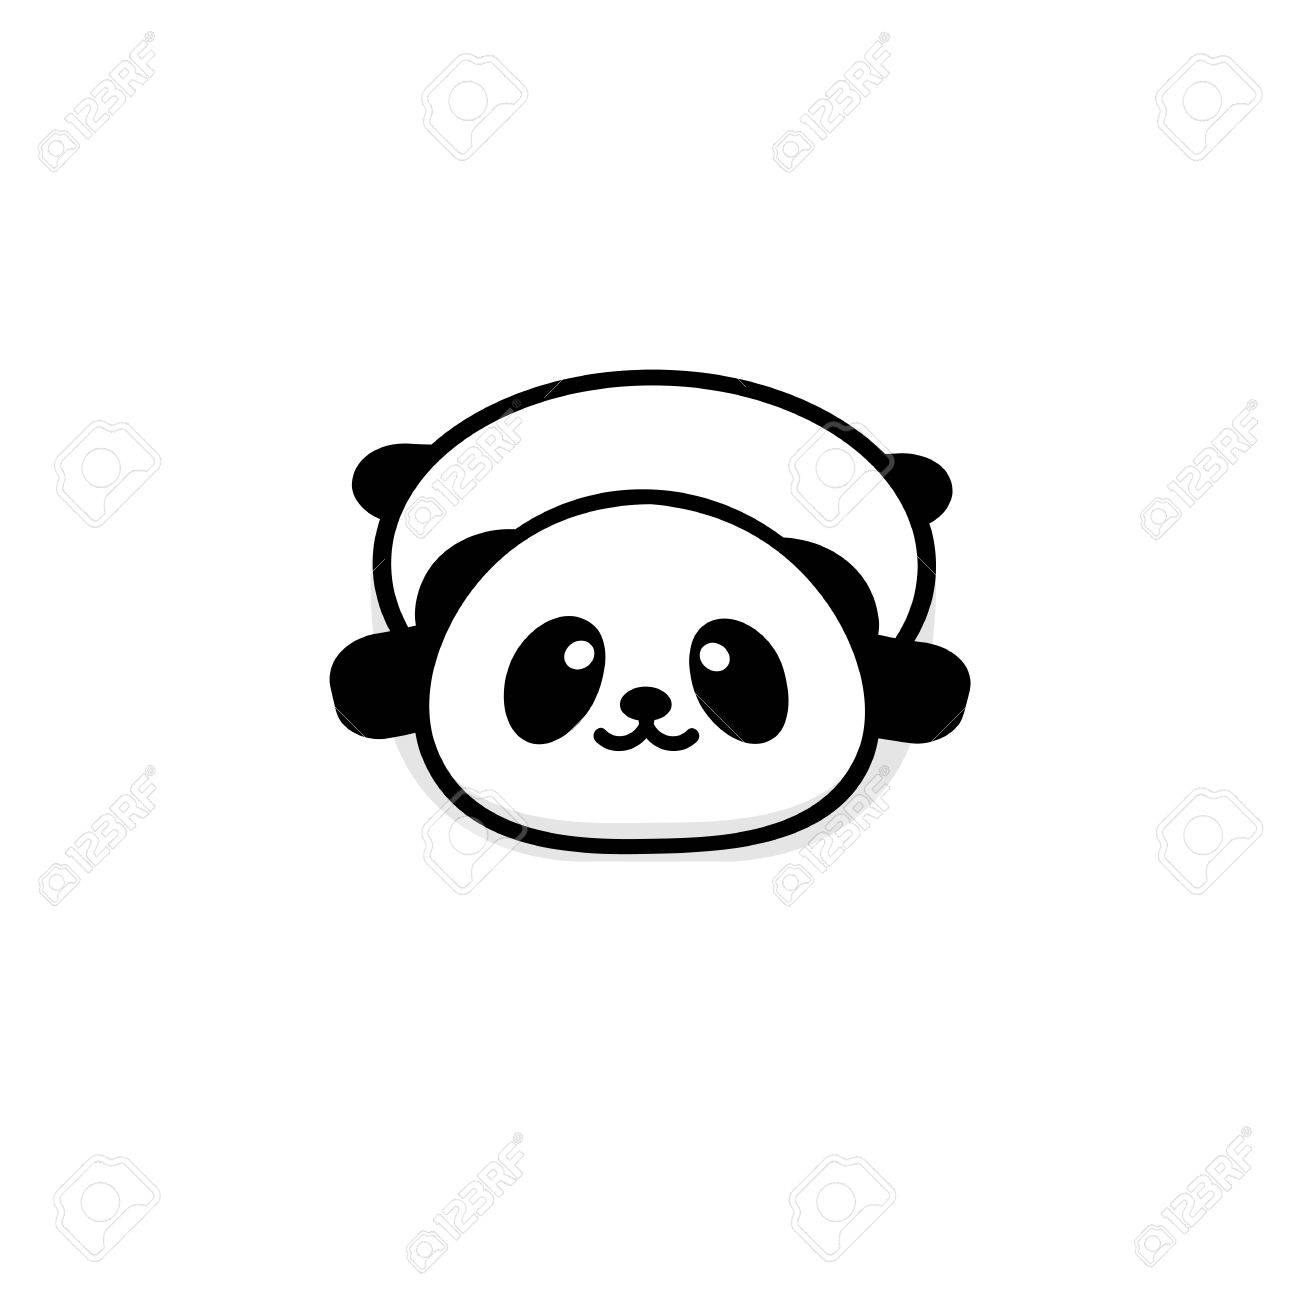 Cute Stout Panda Rest Lying Down Vector Illustration Baby Bear